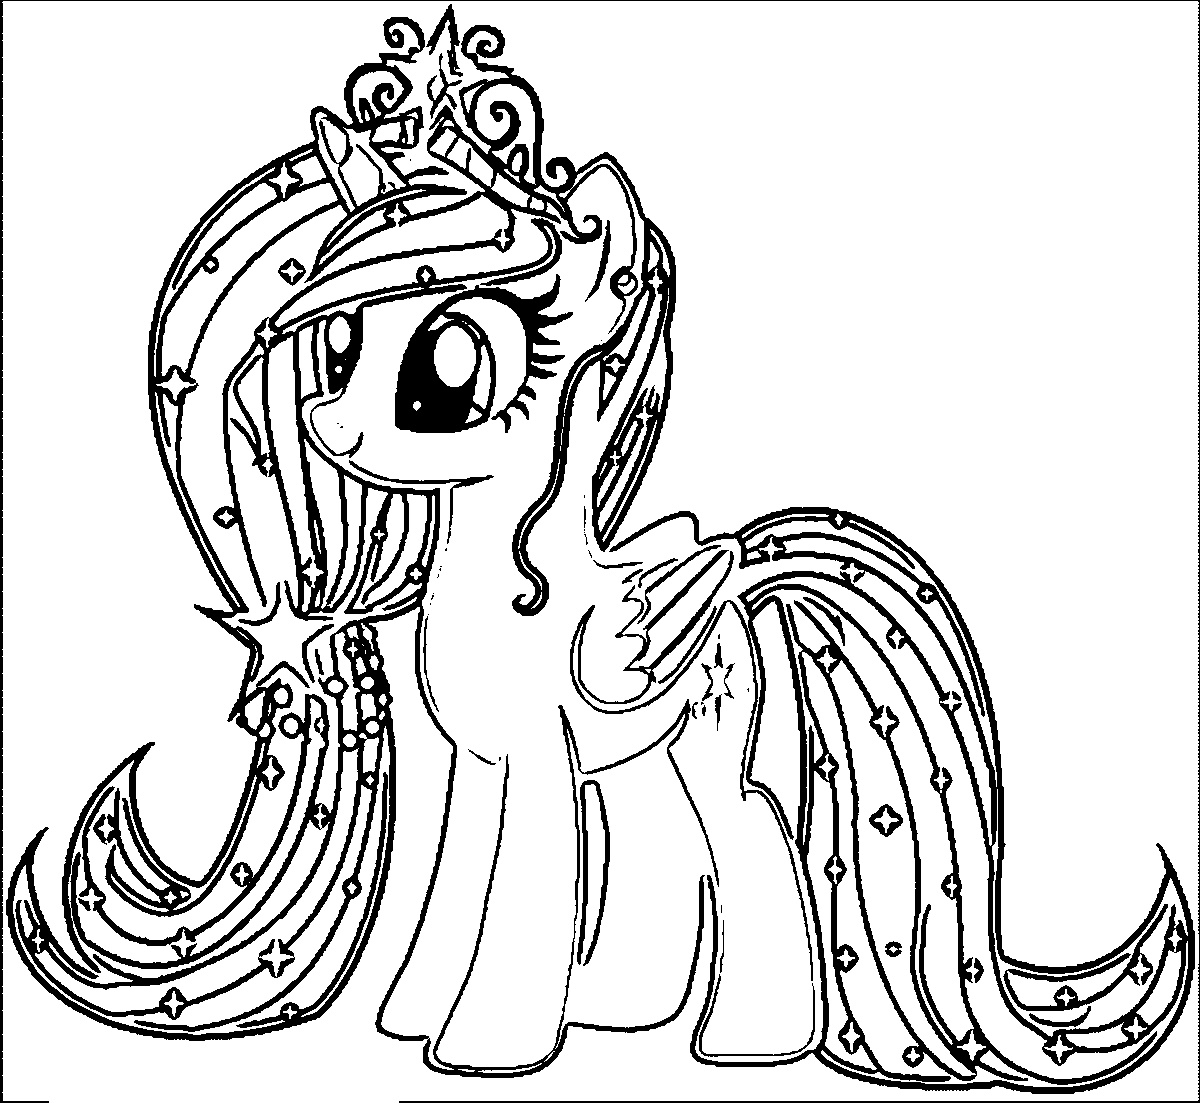 my lil pony coloring pages my lil pony coloring pages coloring lil pages pony my